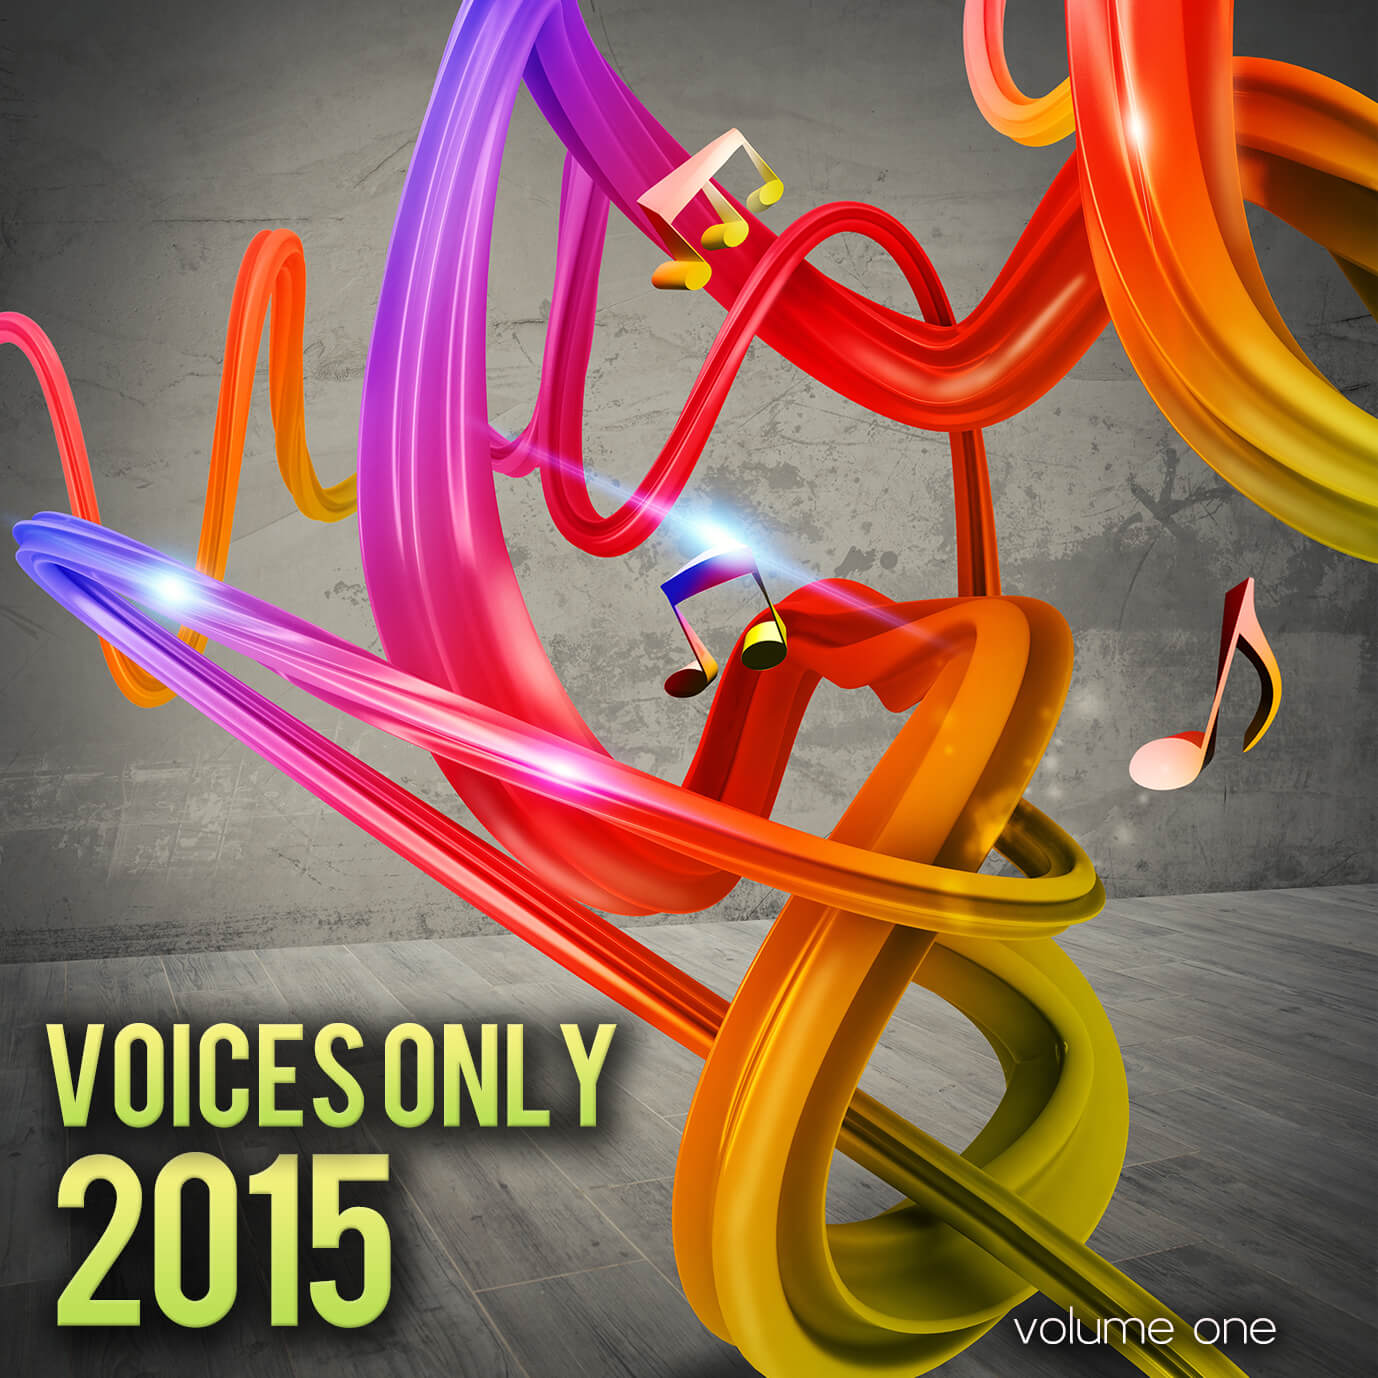 Voices Only 2015